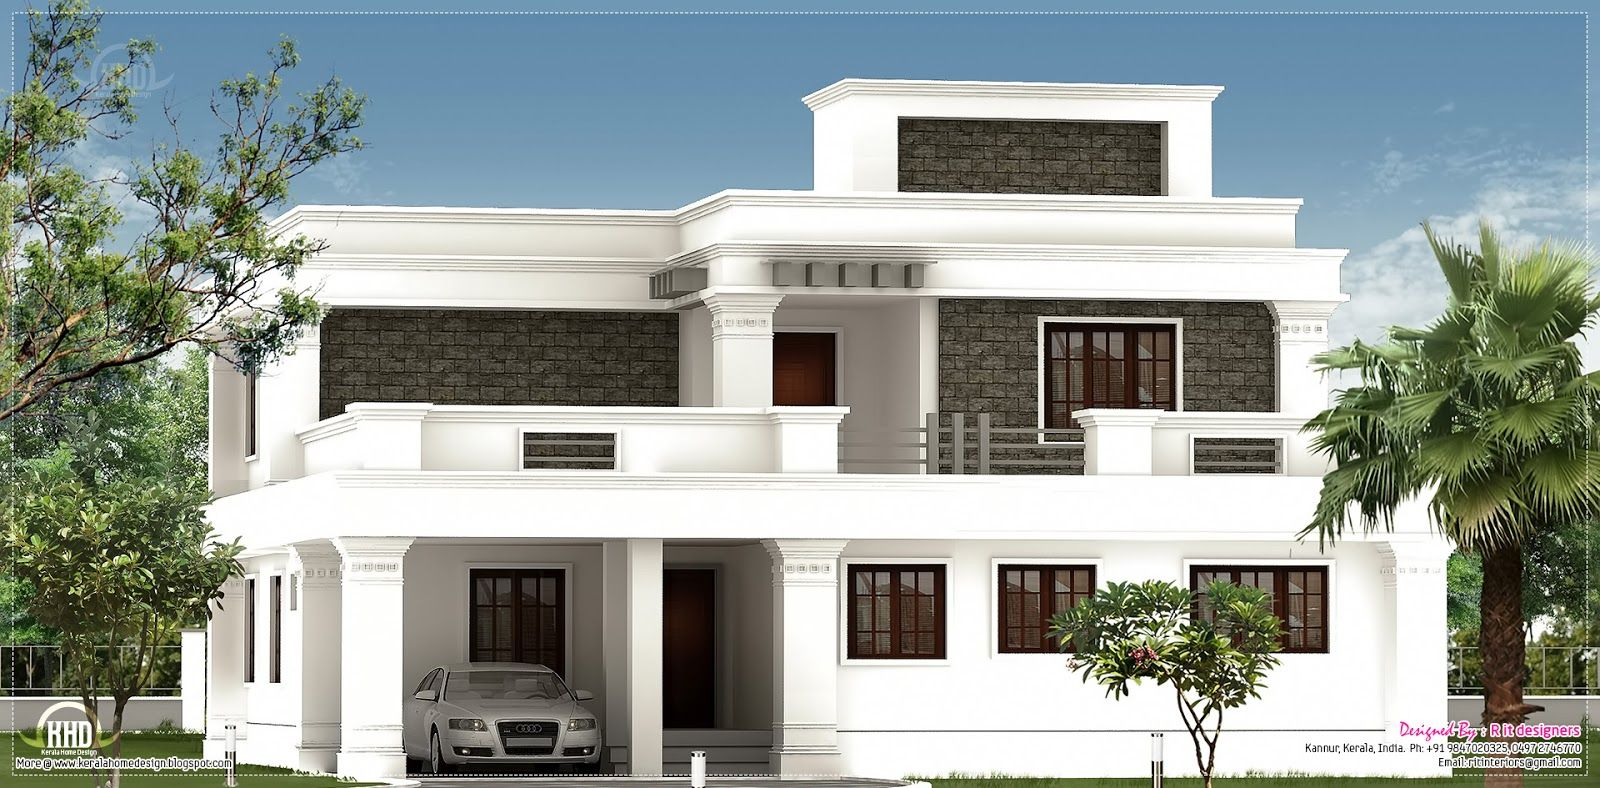 Flat roof homes designs flat roof villa exterior in 2400 for Indian house portico models